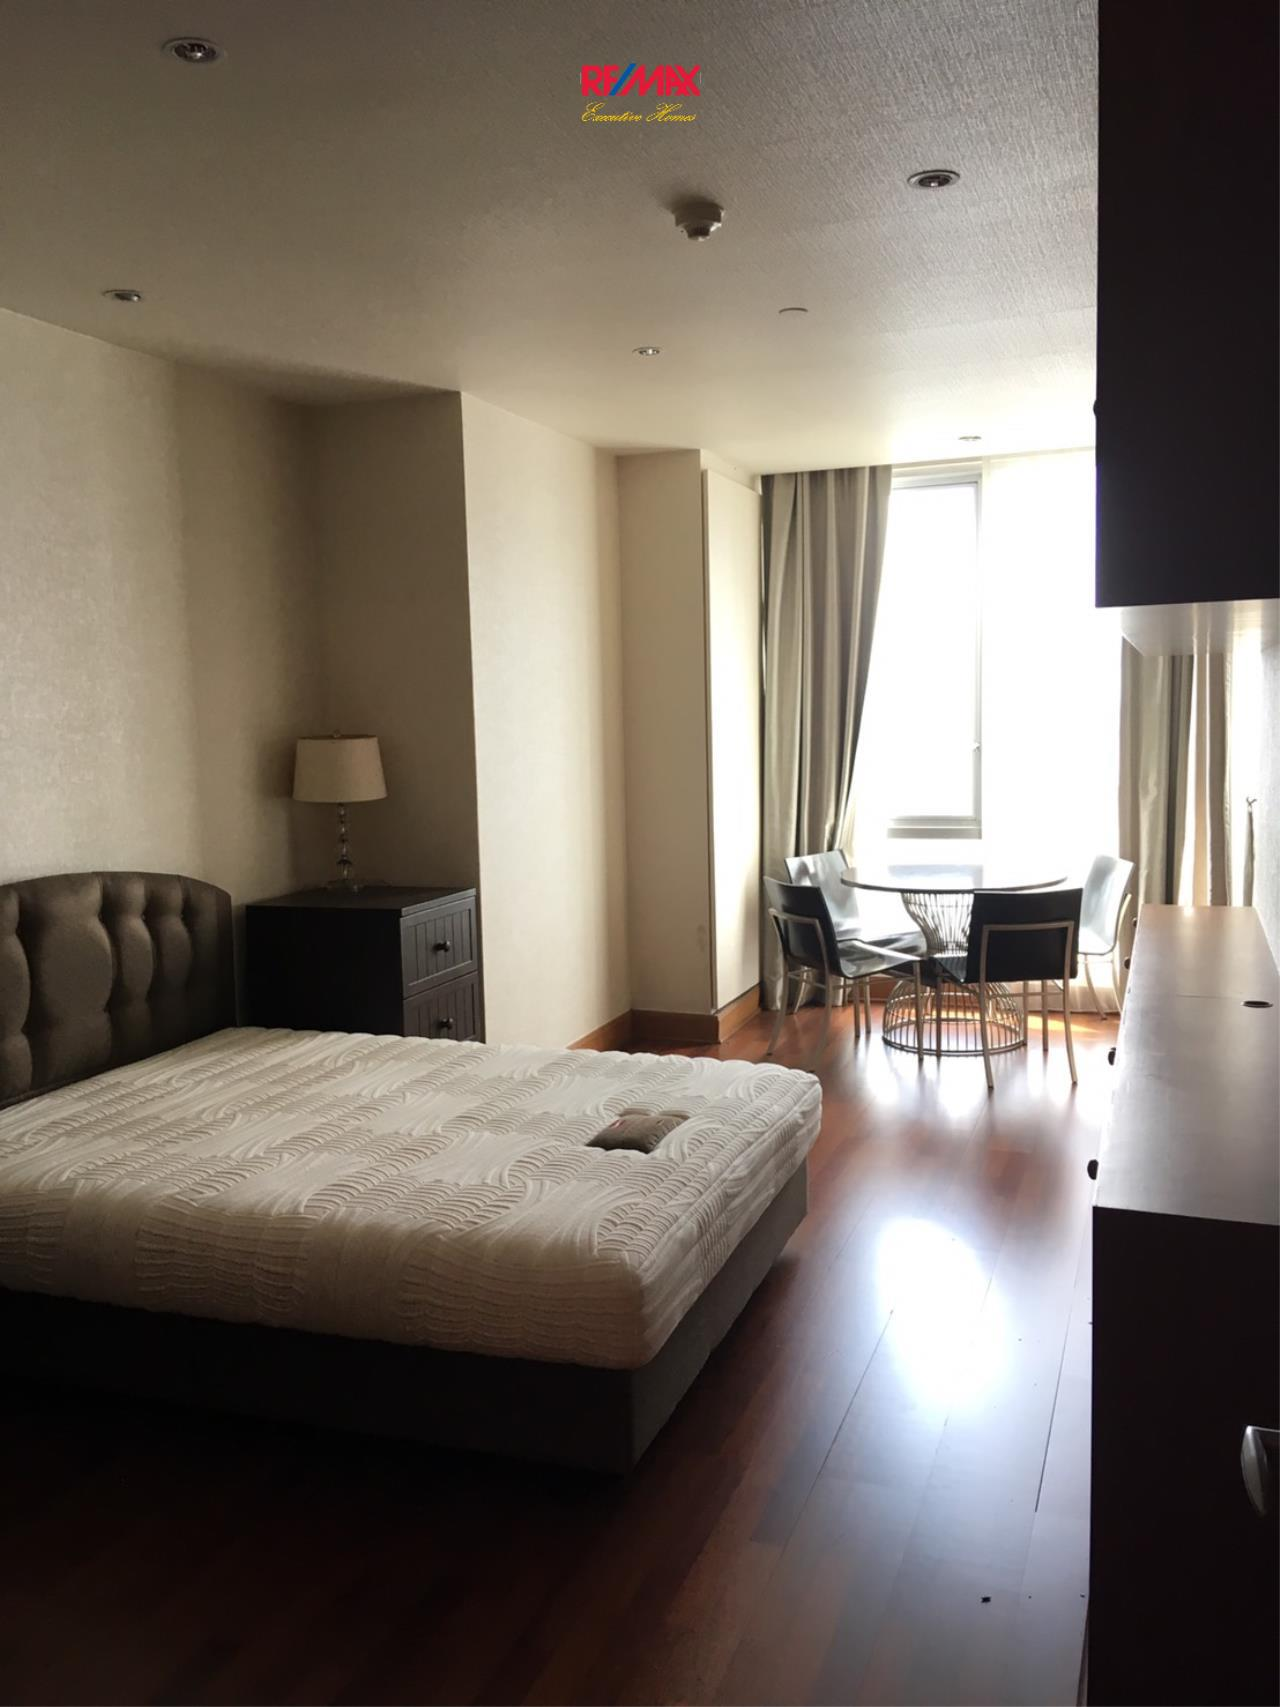 RE/MAX Executive Homes Agency's Nice 3 Bedroom for Rent Sky Villa Sathorn 3